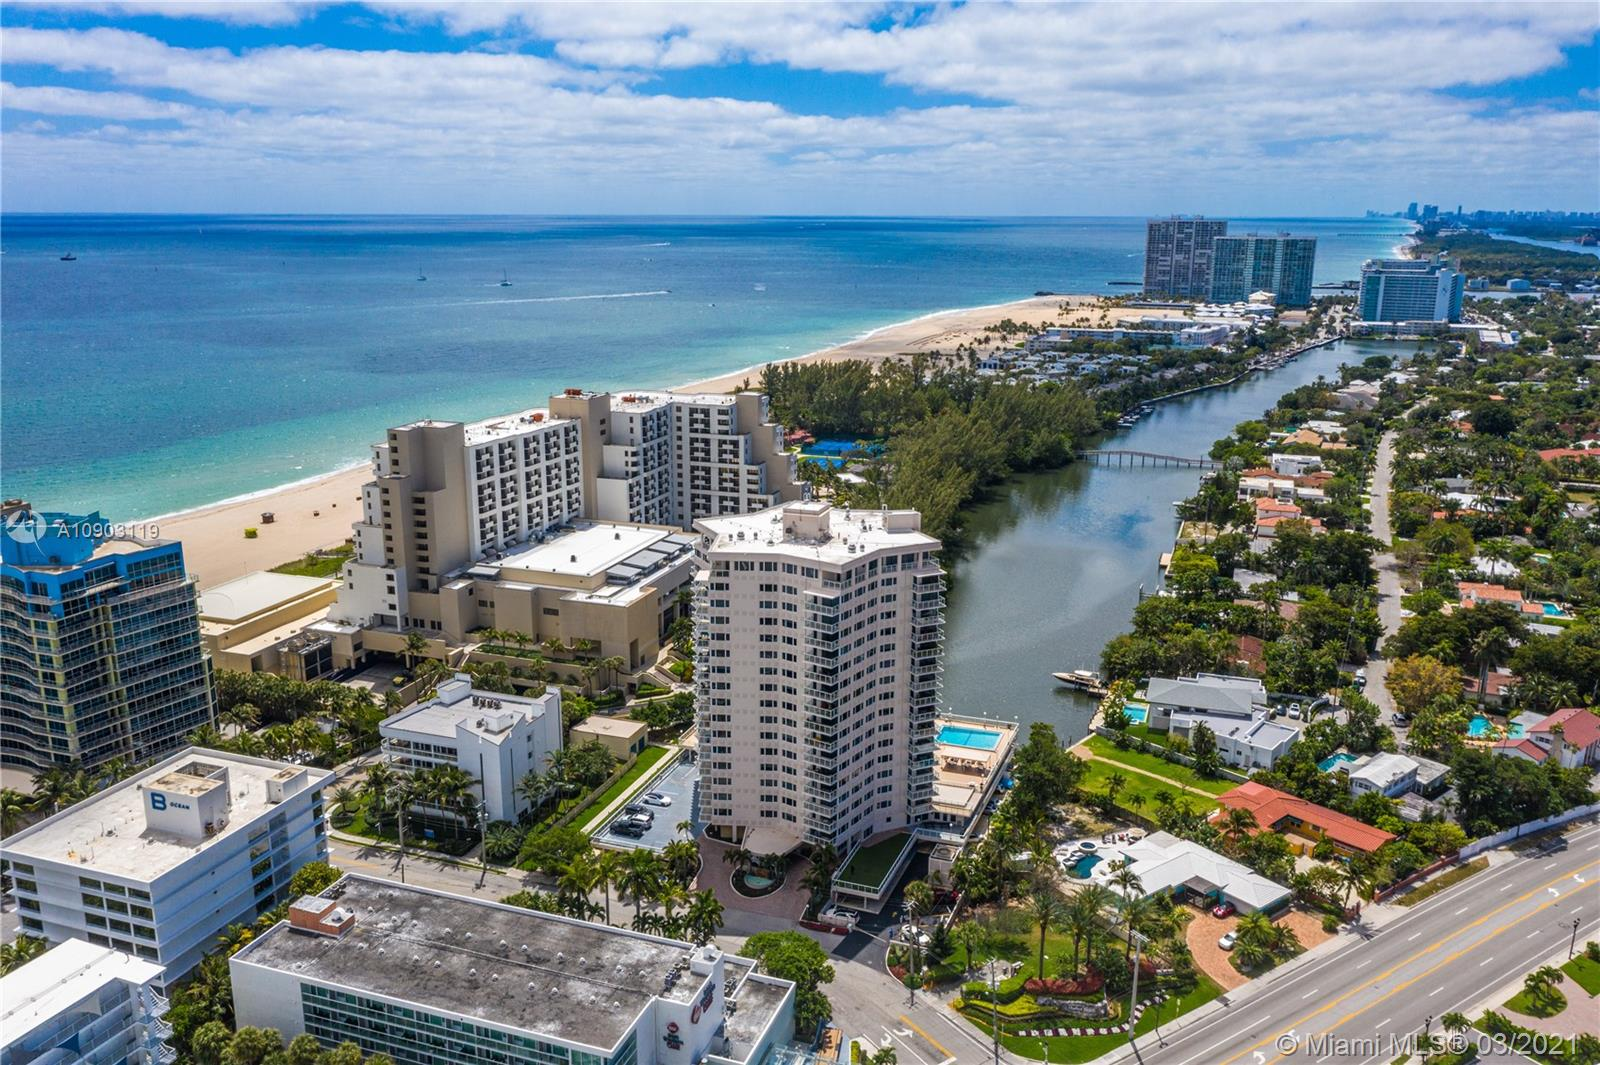 Enjoy everything Fort Lauderdale Beach has to offer in this beautifully renovated 2 bedroom, 2 bathroom condo east of A1A.  Spacious, 1609 square foot southwest corner unit with views of the Intracoastal and Lake Mayan.  Building amenities include a large pool area, covered parking, community room and a gym featuring a Peloton.  Large impact windows bring the views to every room.